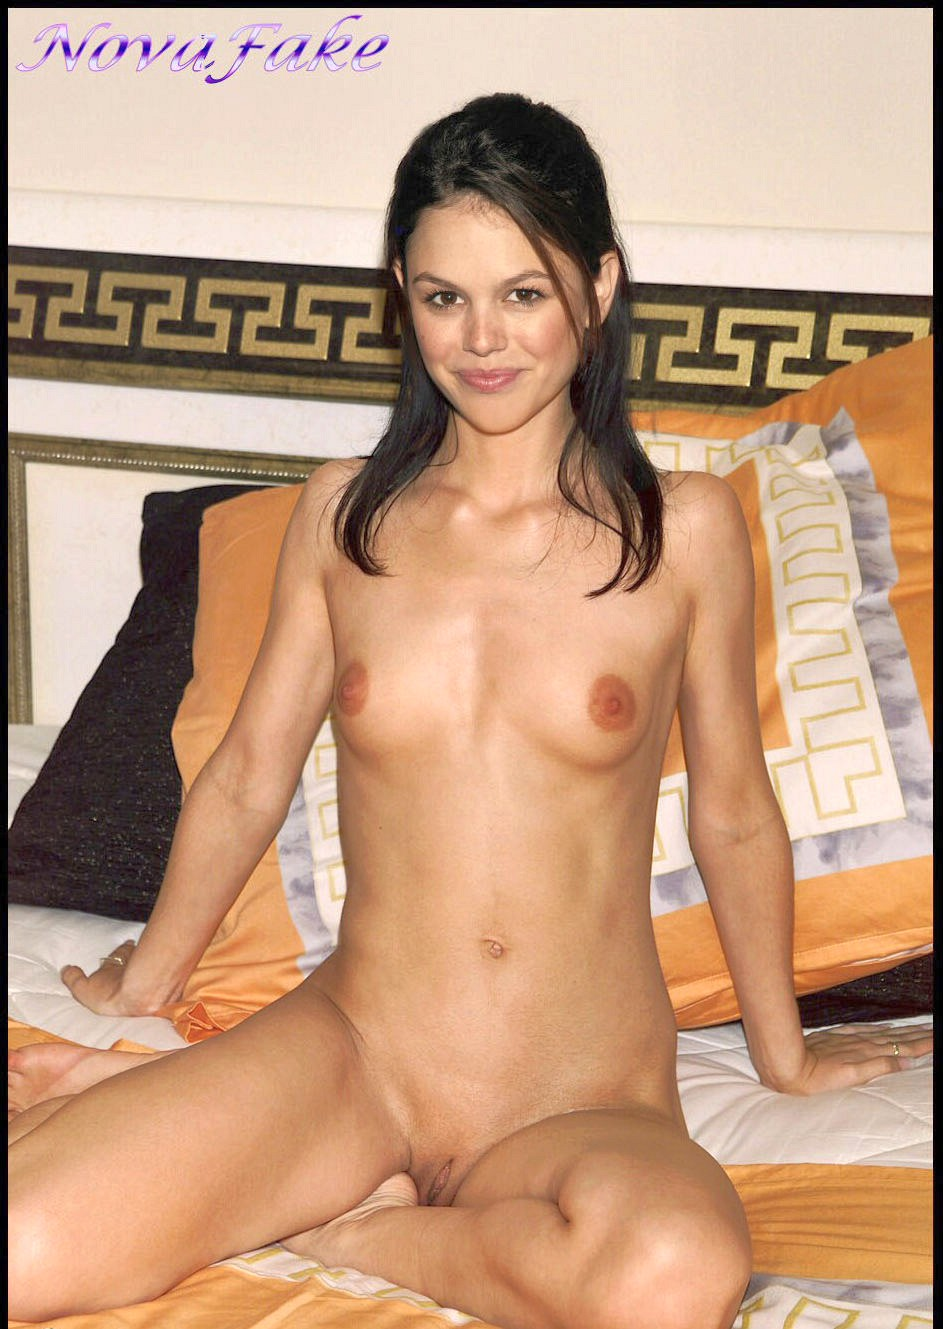 Rachel ticotin naked sex pussy porncraft image